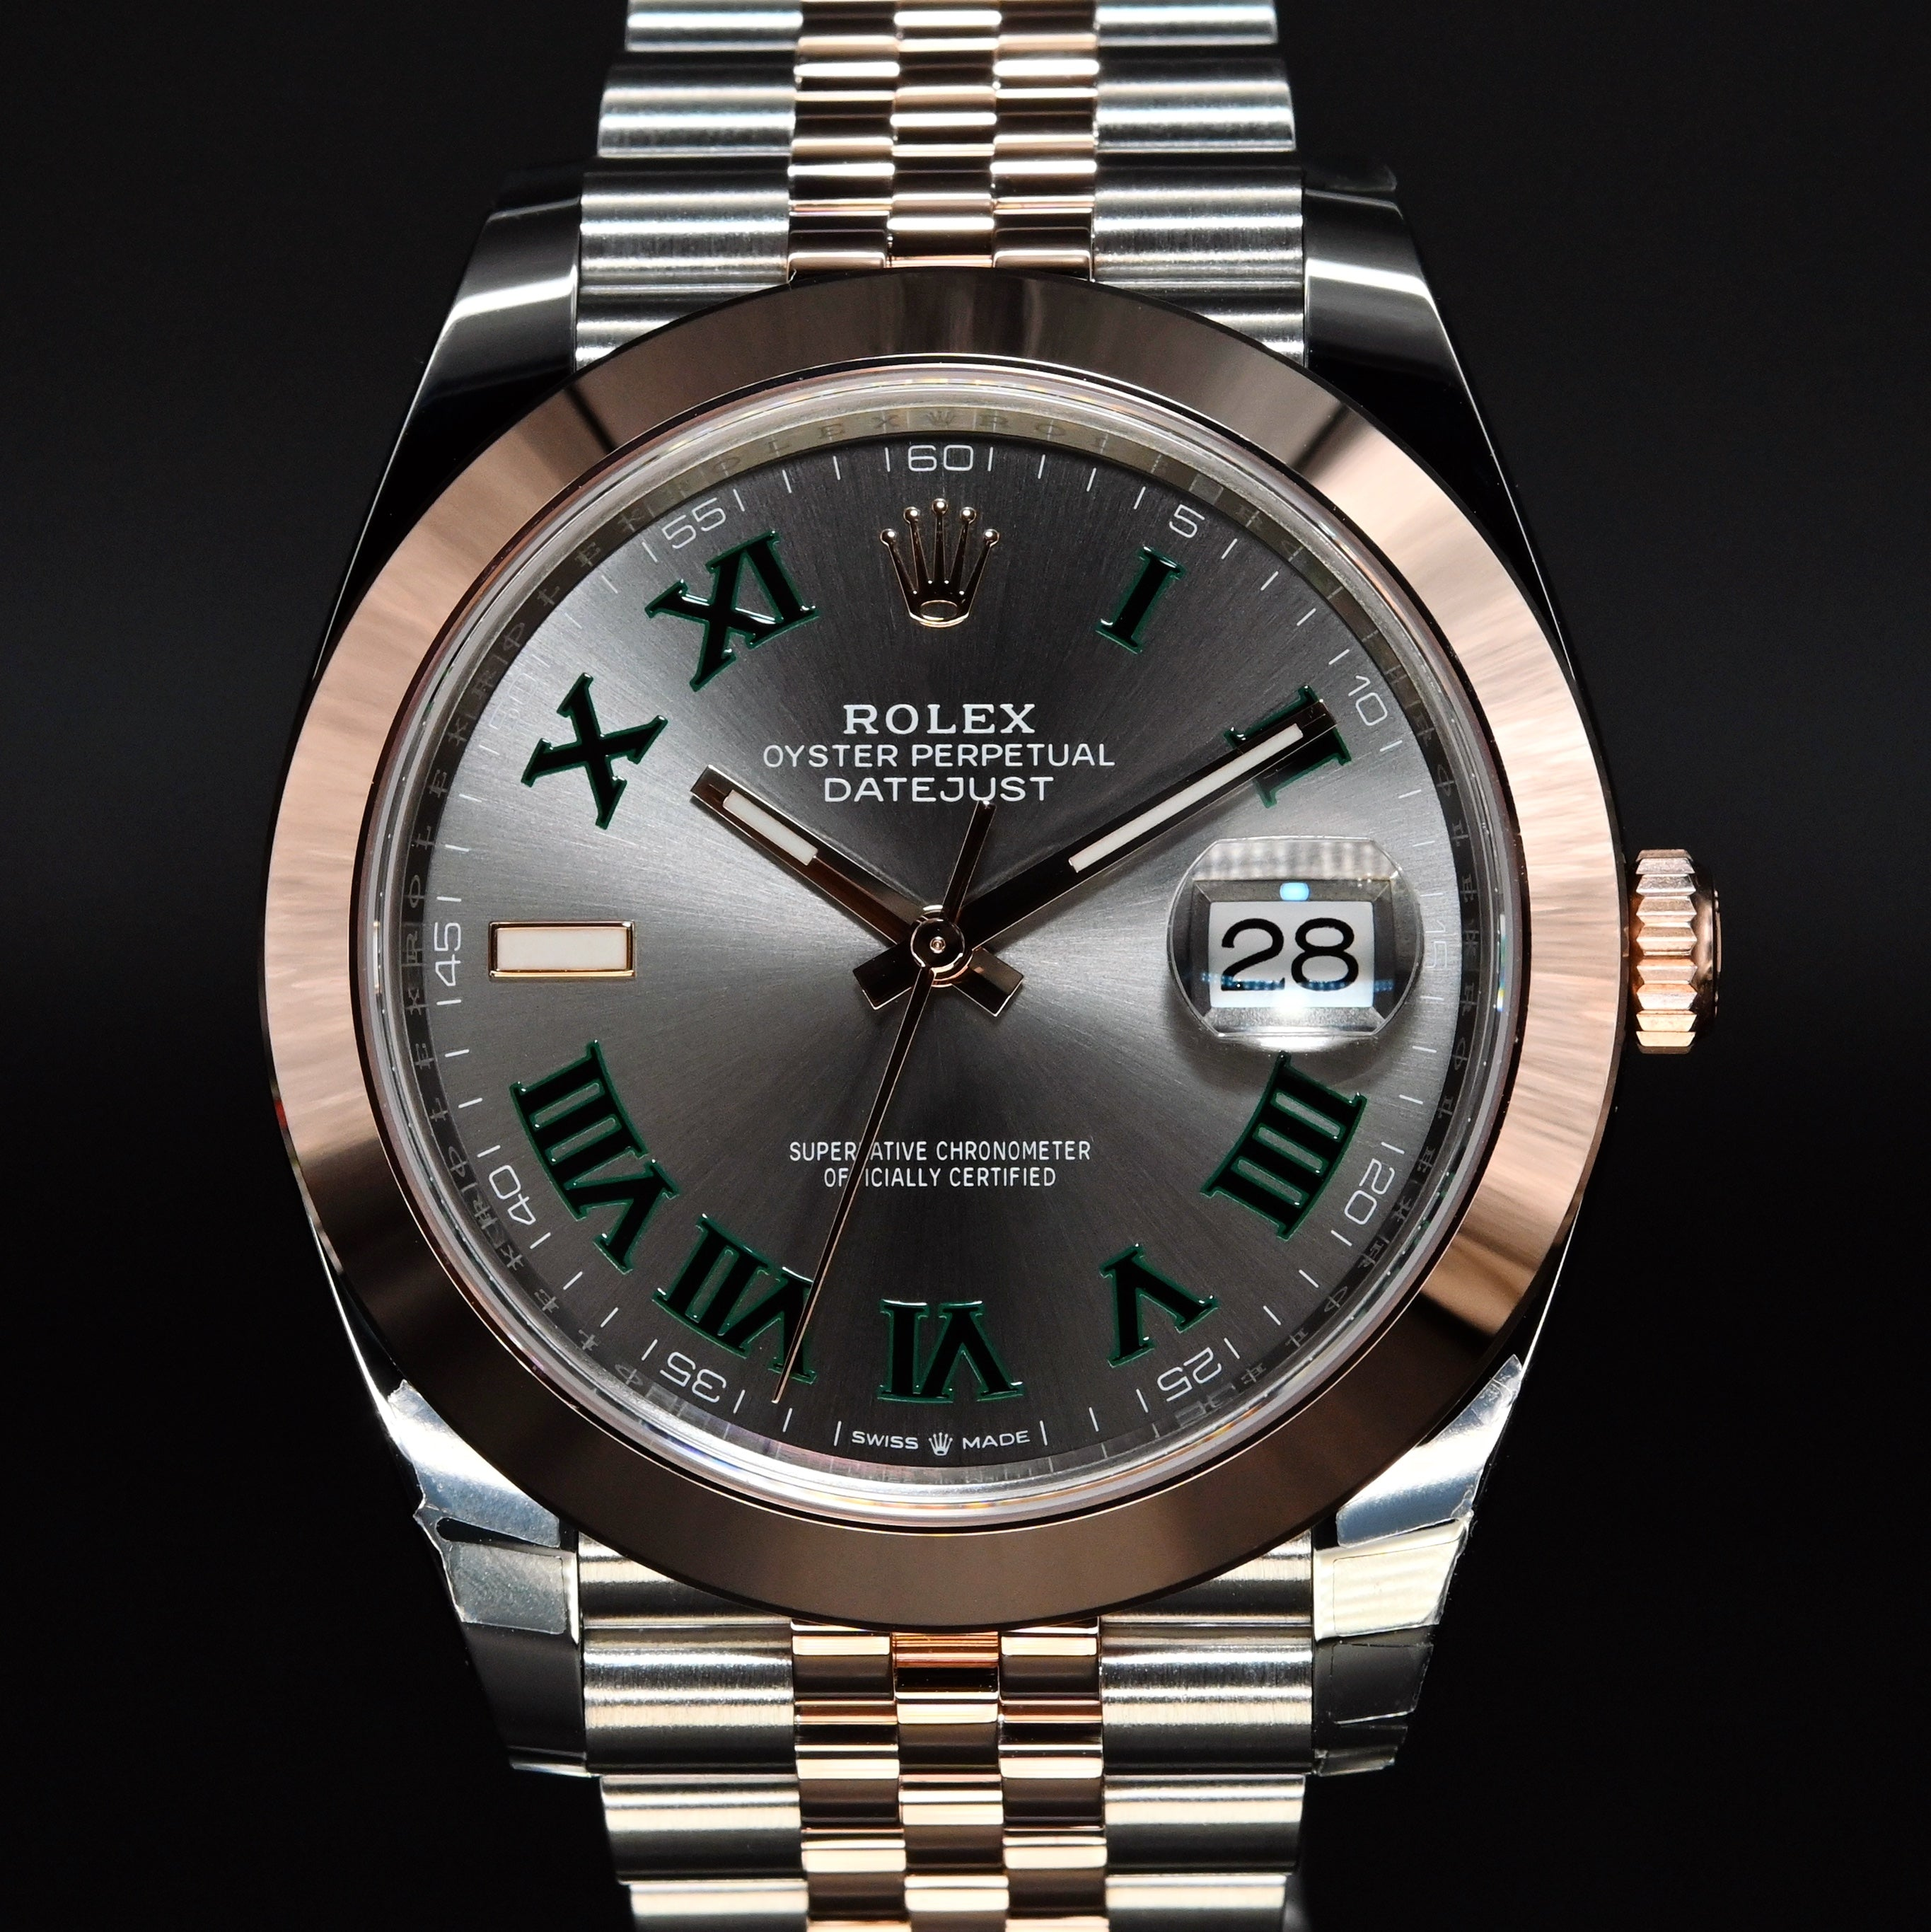 [Brand New Watch] Rolex Datejust 41mm 126301 Slate Roman Dial (Jubilee Bracelet)